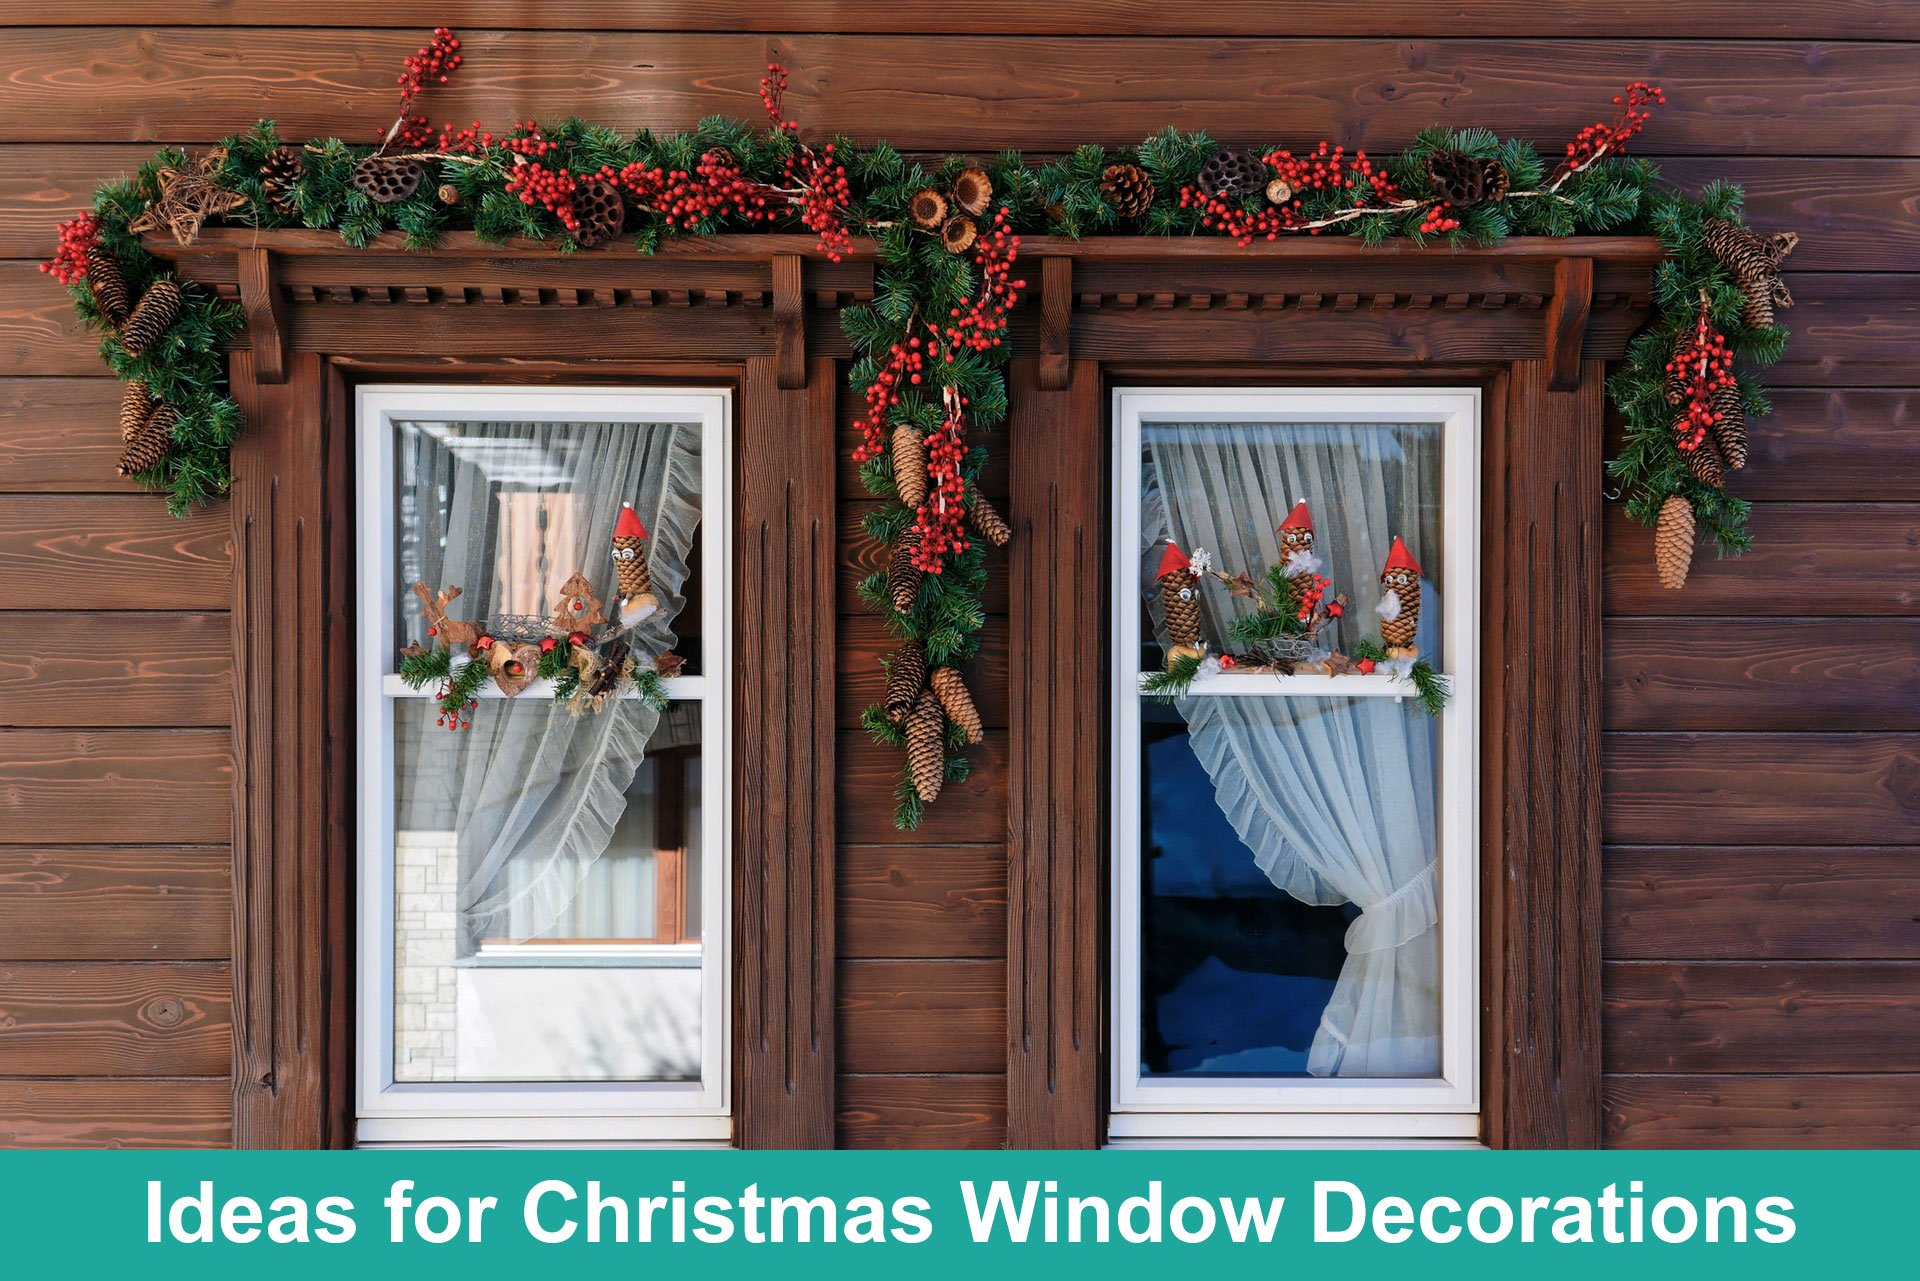 Best Ideas for Christmas Window Decorations